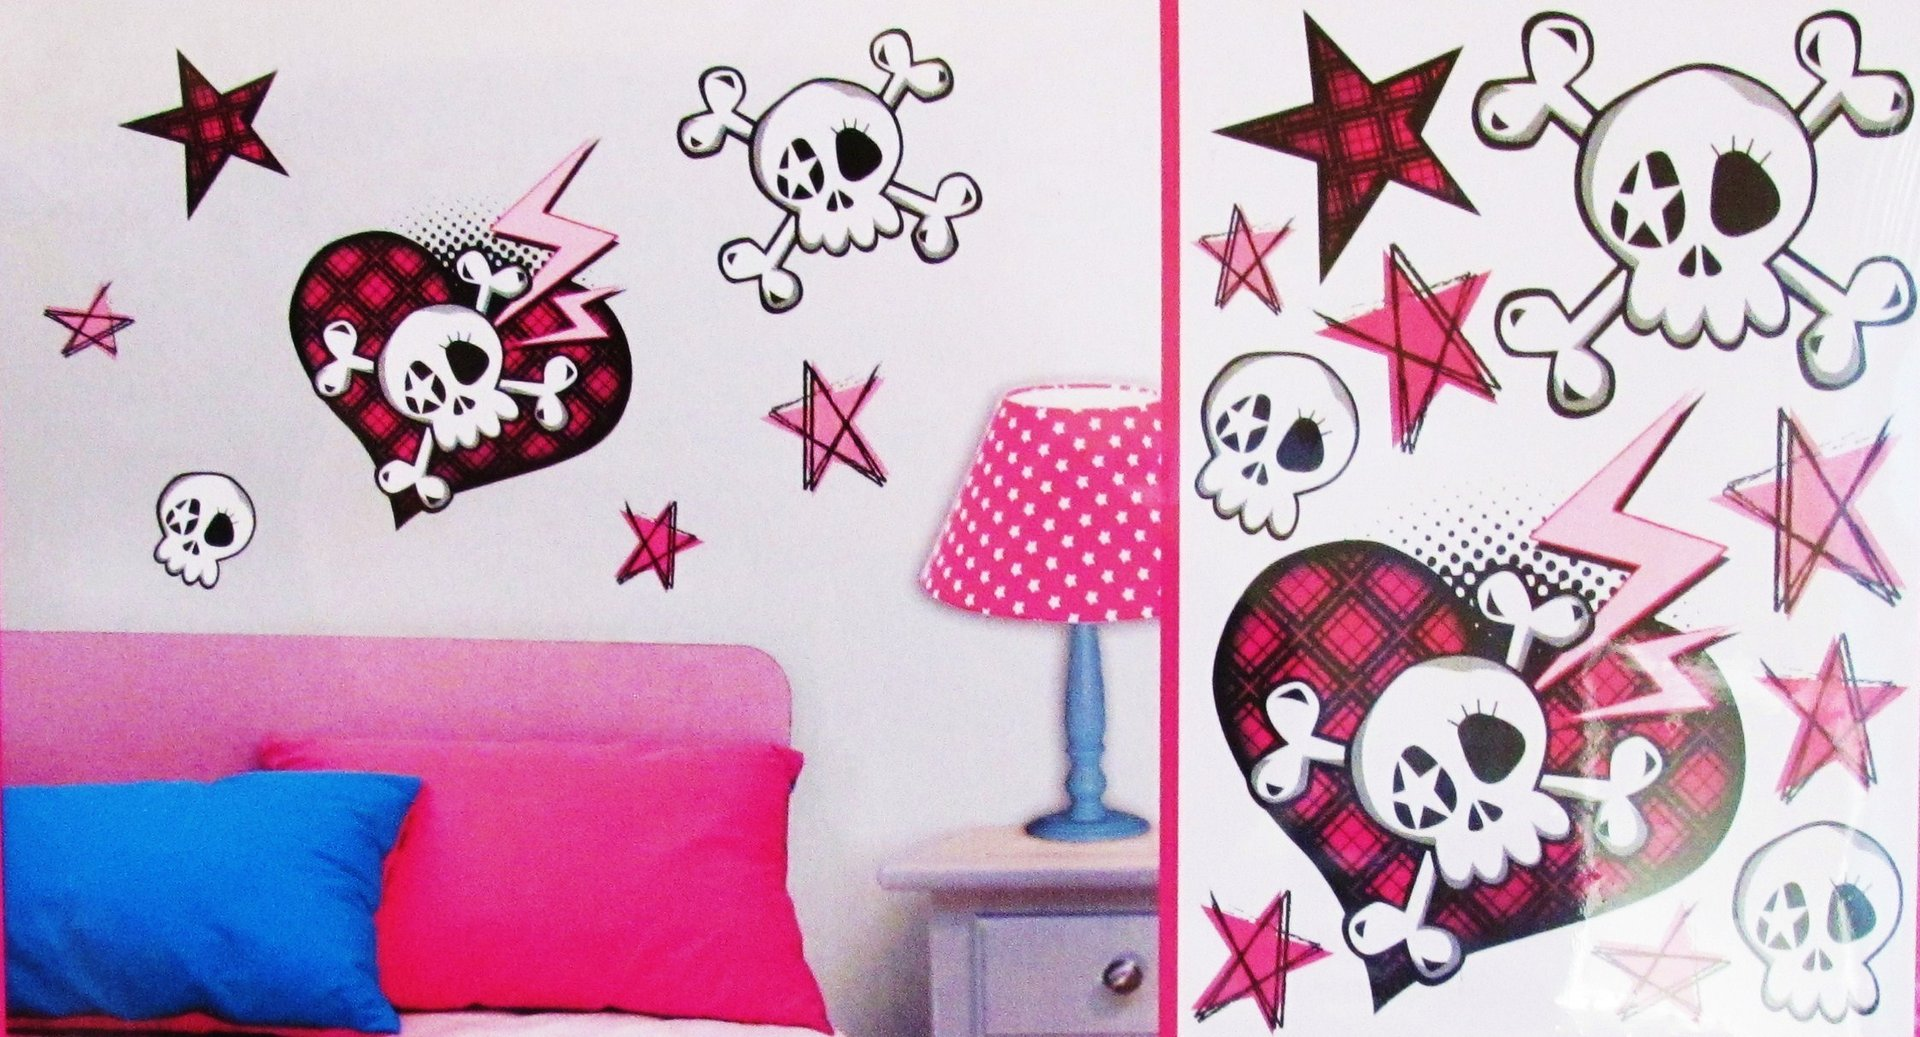 wandtattoo wandsticker wandaufkleber totenkopf regenbogenwelt24. Black Bedroom Furniture Sets. Home Design Ideas